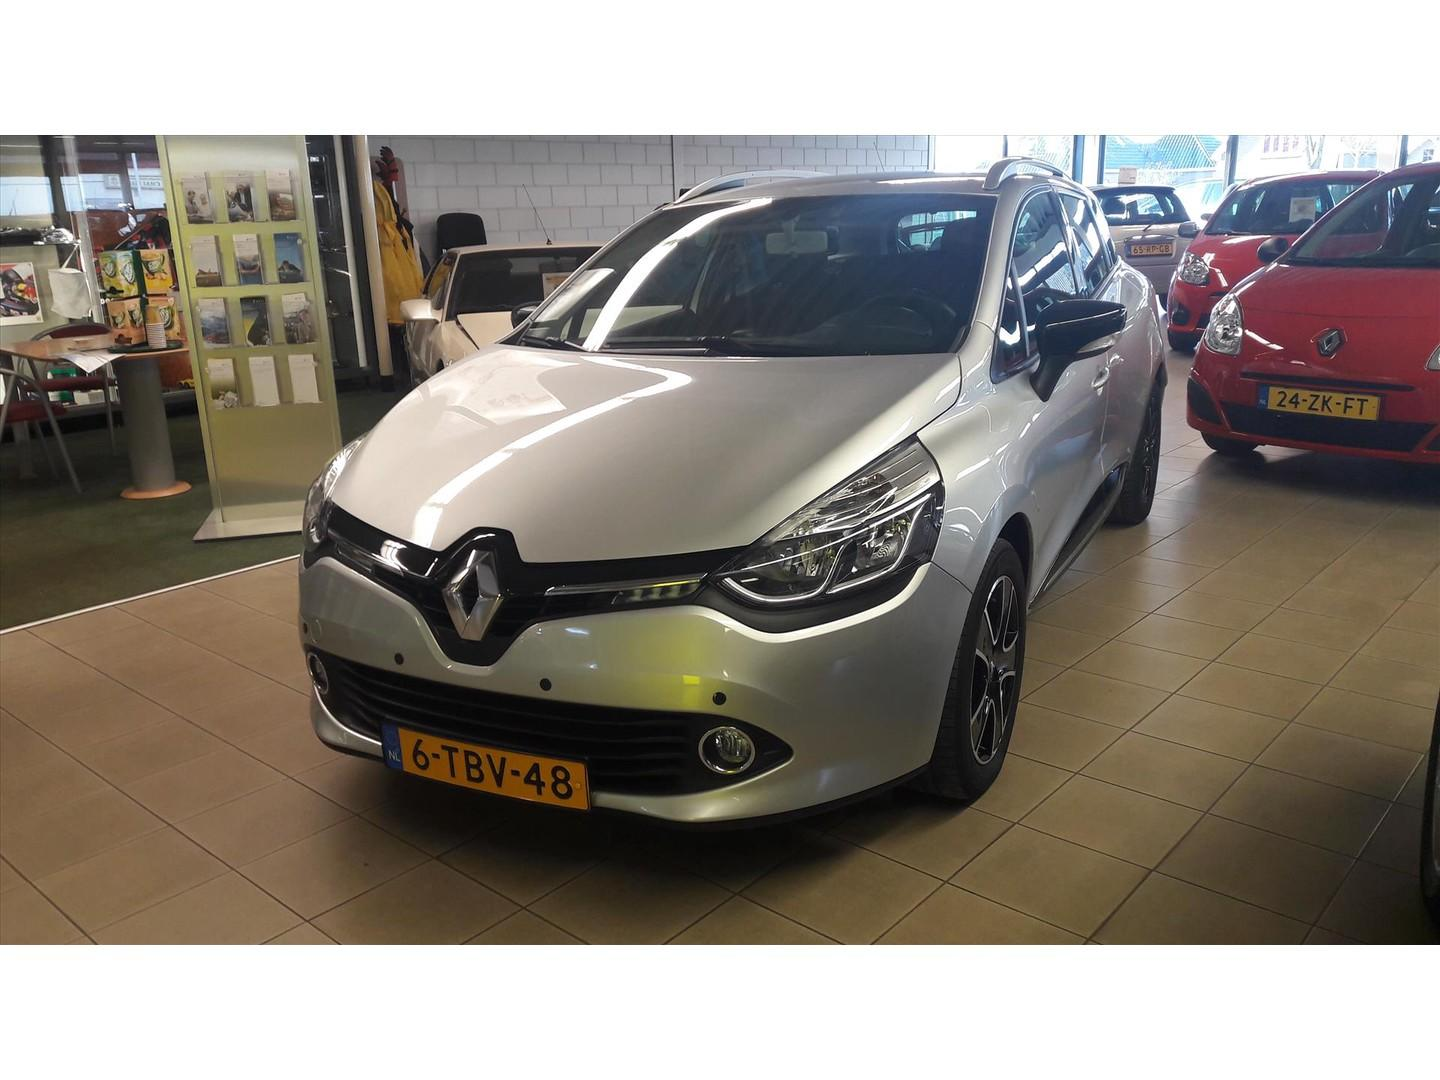 Renault Clio 0.9 tce 90 estate expression